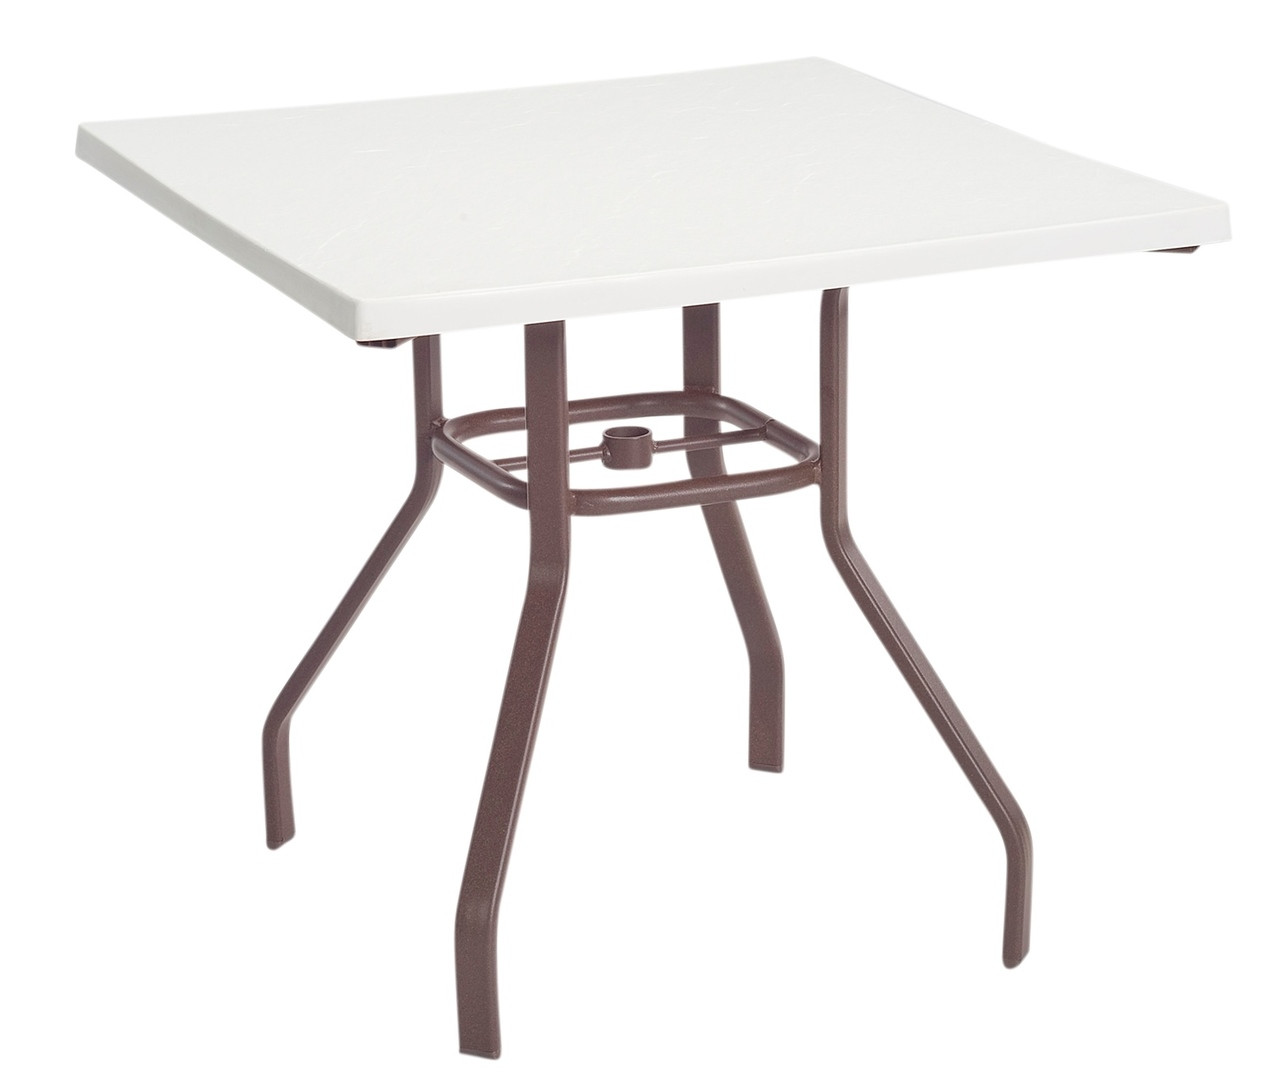 Resort contract fiberglass dining table commercial patio